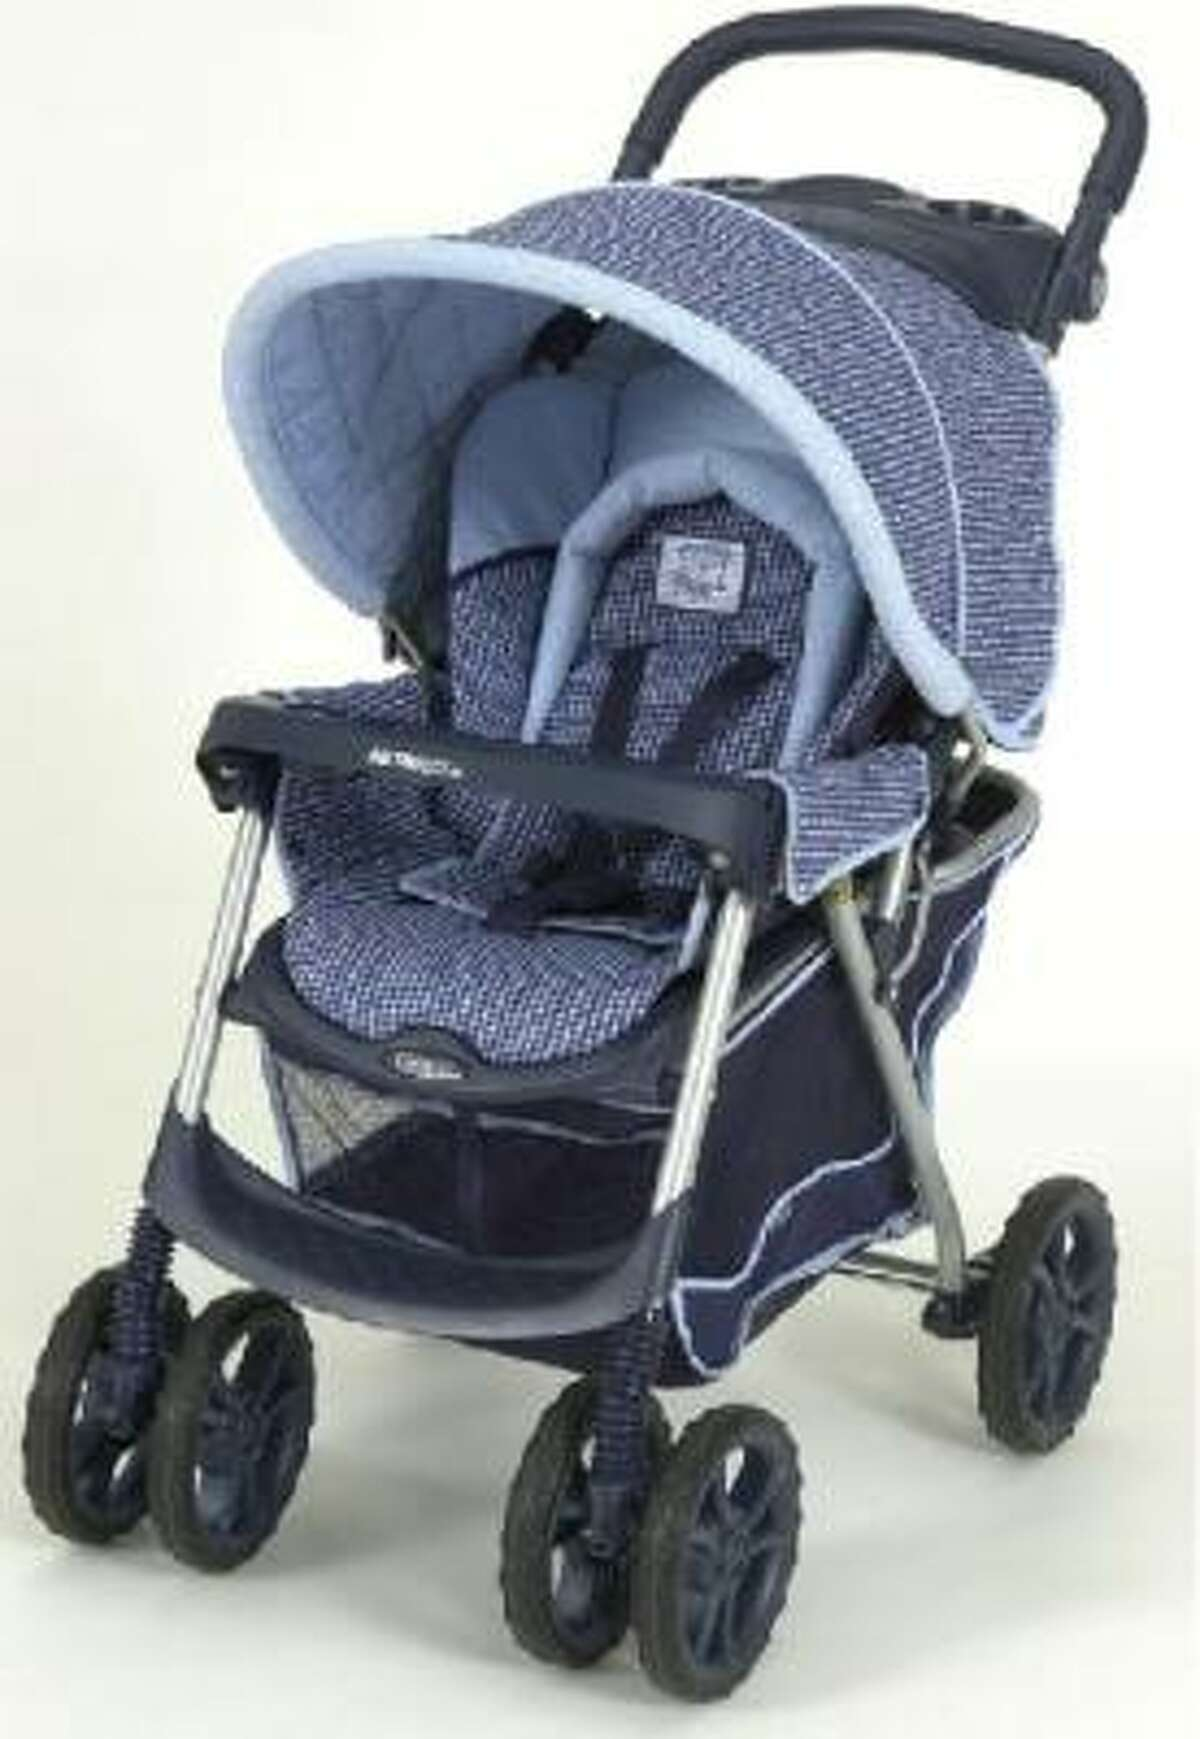 Recalled: 2 million Graco strollers due to risk of entrapment and strangulation. Injuries: Four infant strangulations, five reports of infants becoming entrapped, resulting in cuts and bruises, and one report of an infant having difficulty breathing. More information and models affected at CPSC web site